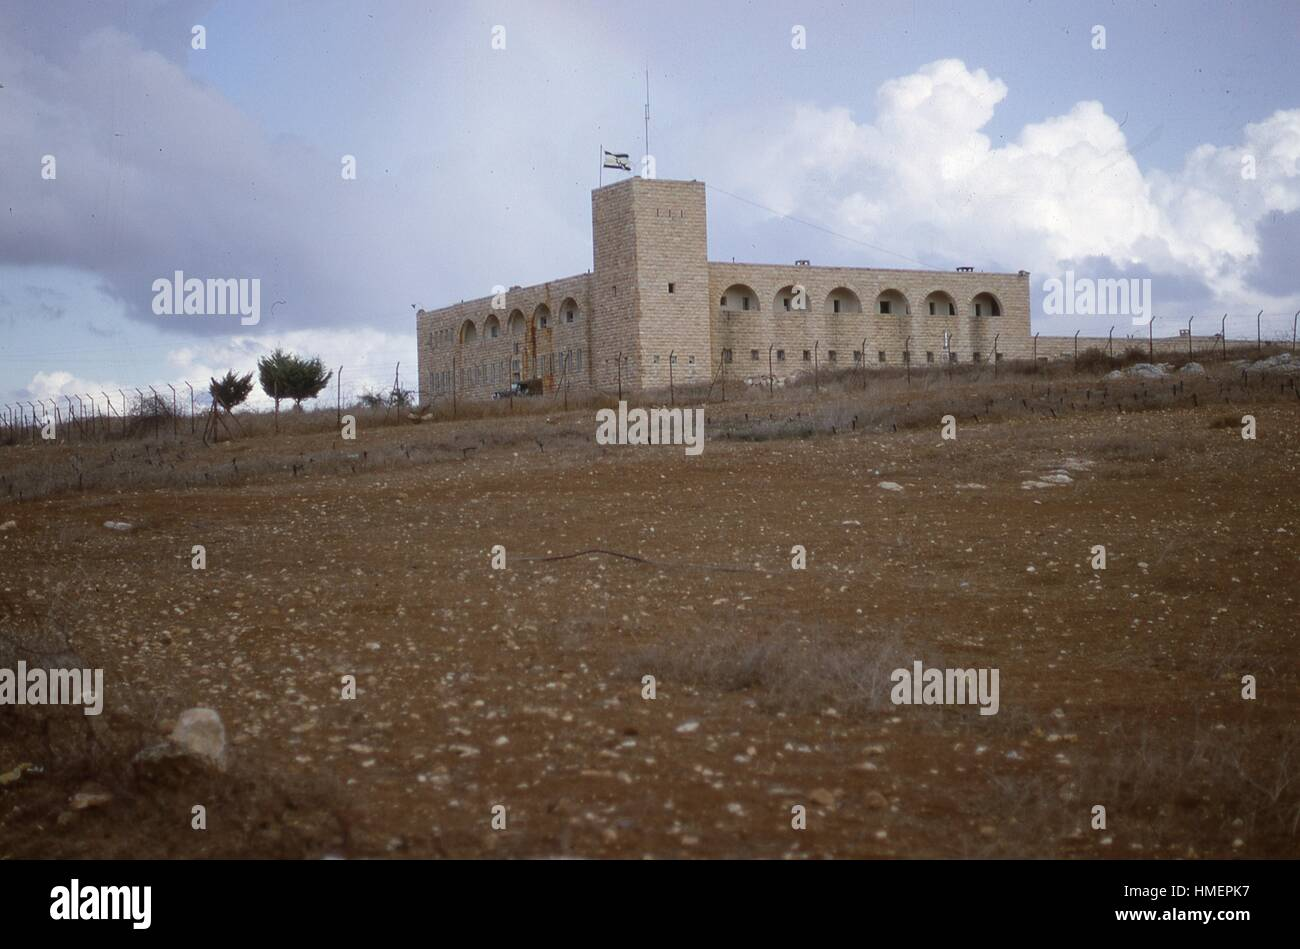 Landscape view from a distance of a stone fortification building with an Israeli flag flying, located behind a barbed - Stock Image